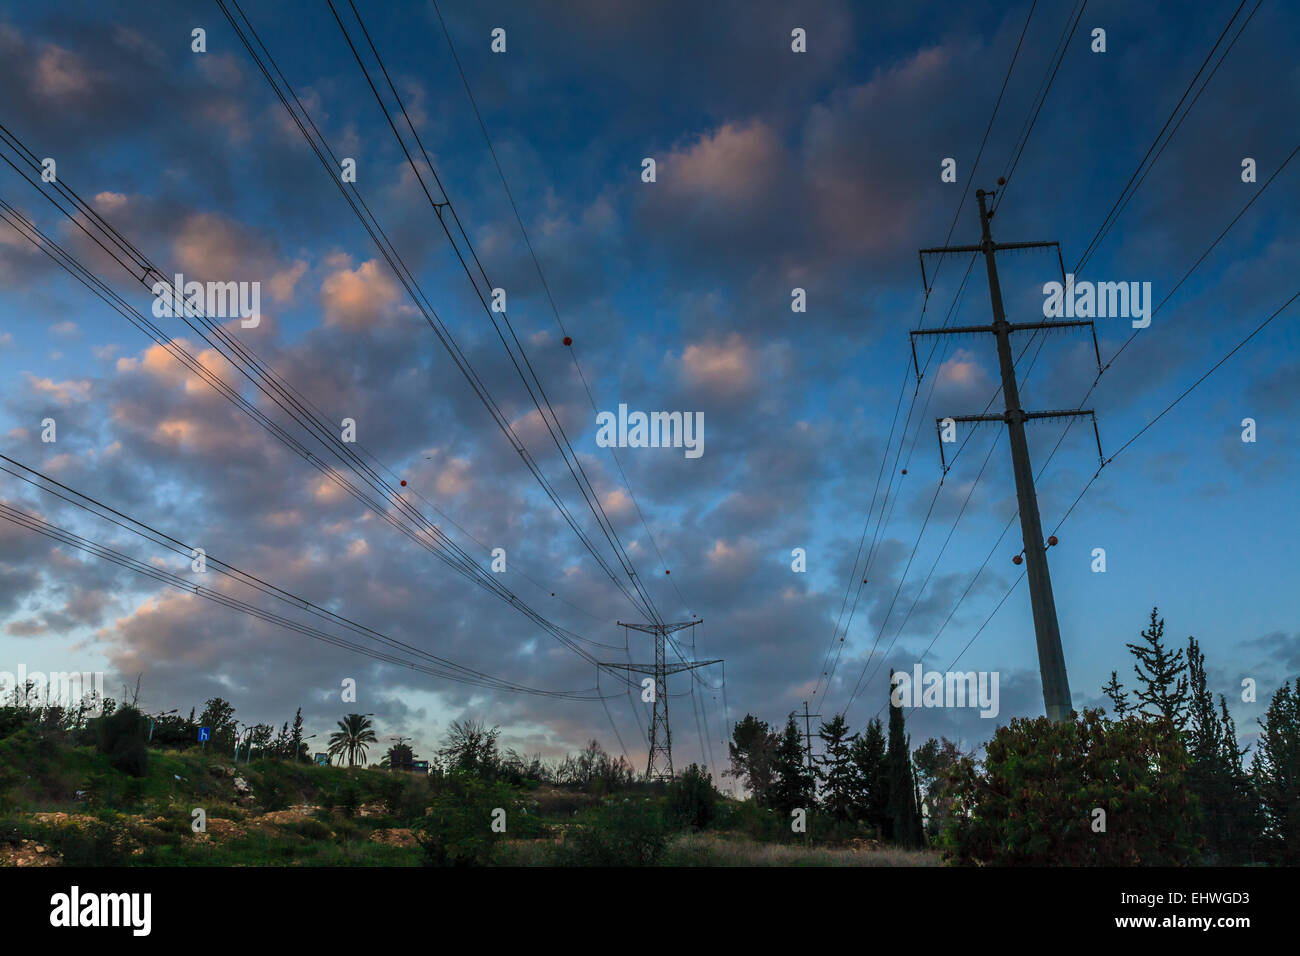 Power Pylons at Dawn Photographed near Rosh Haayin, Israel - Stock Image